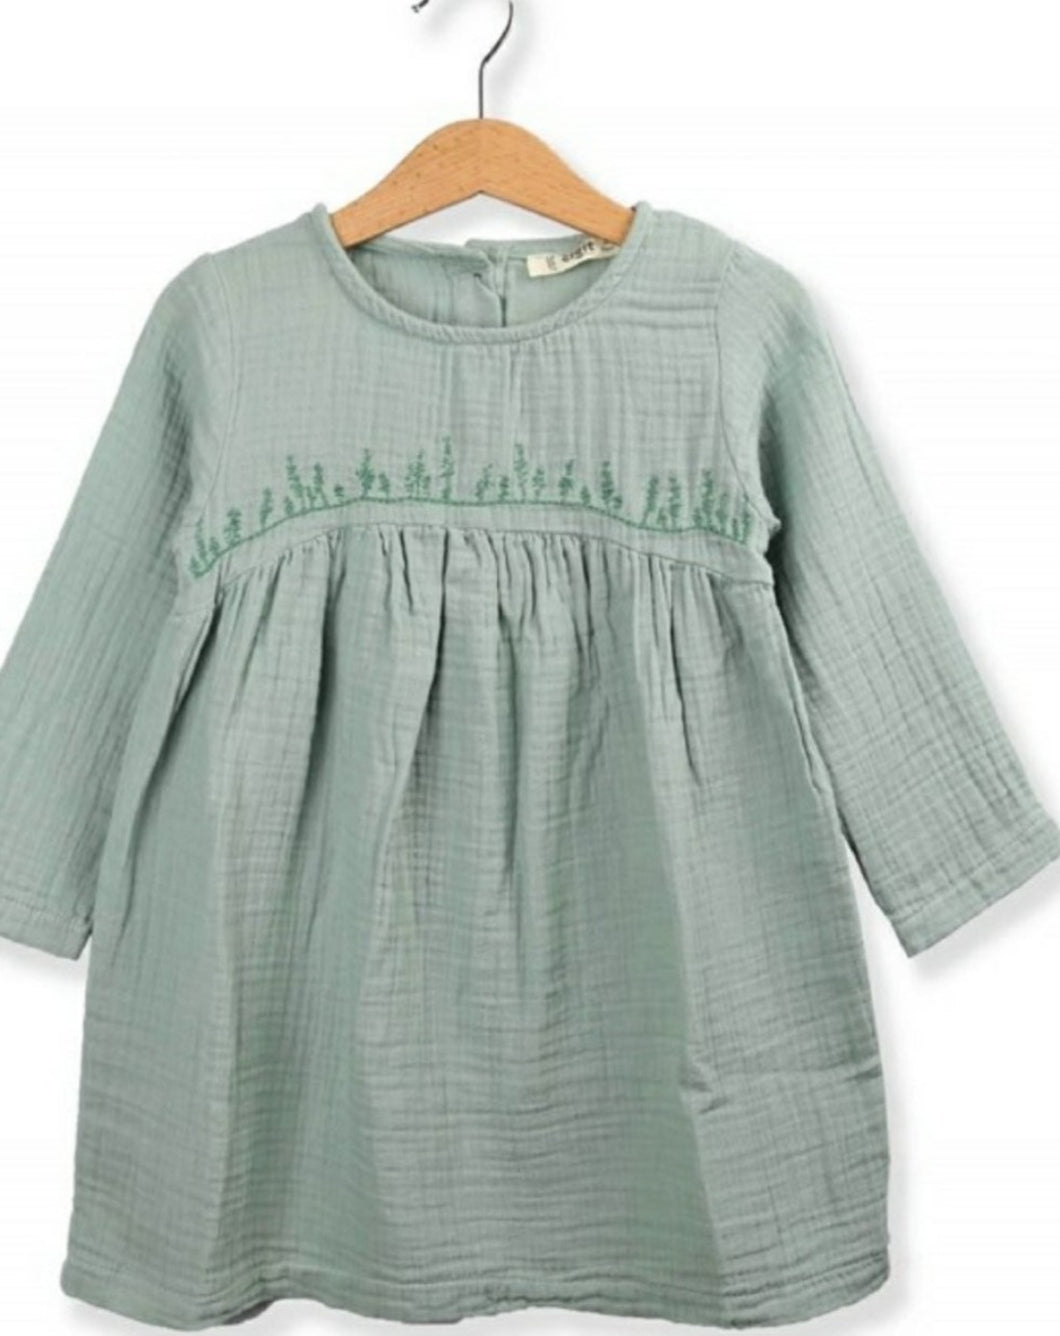 Leaf Motif Cotton Muslin Smock Dress -Mint Green